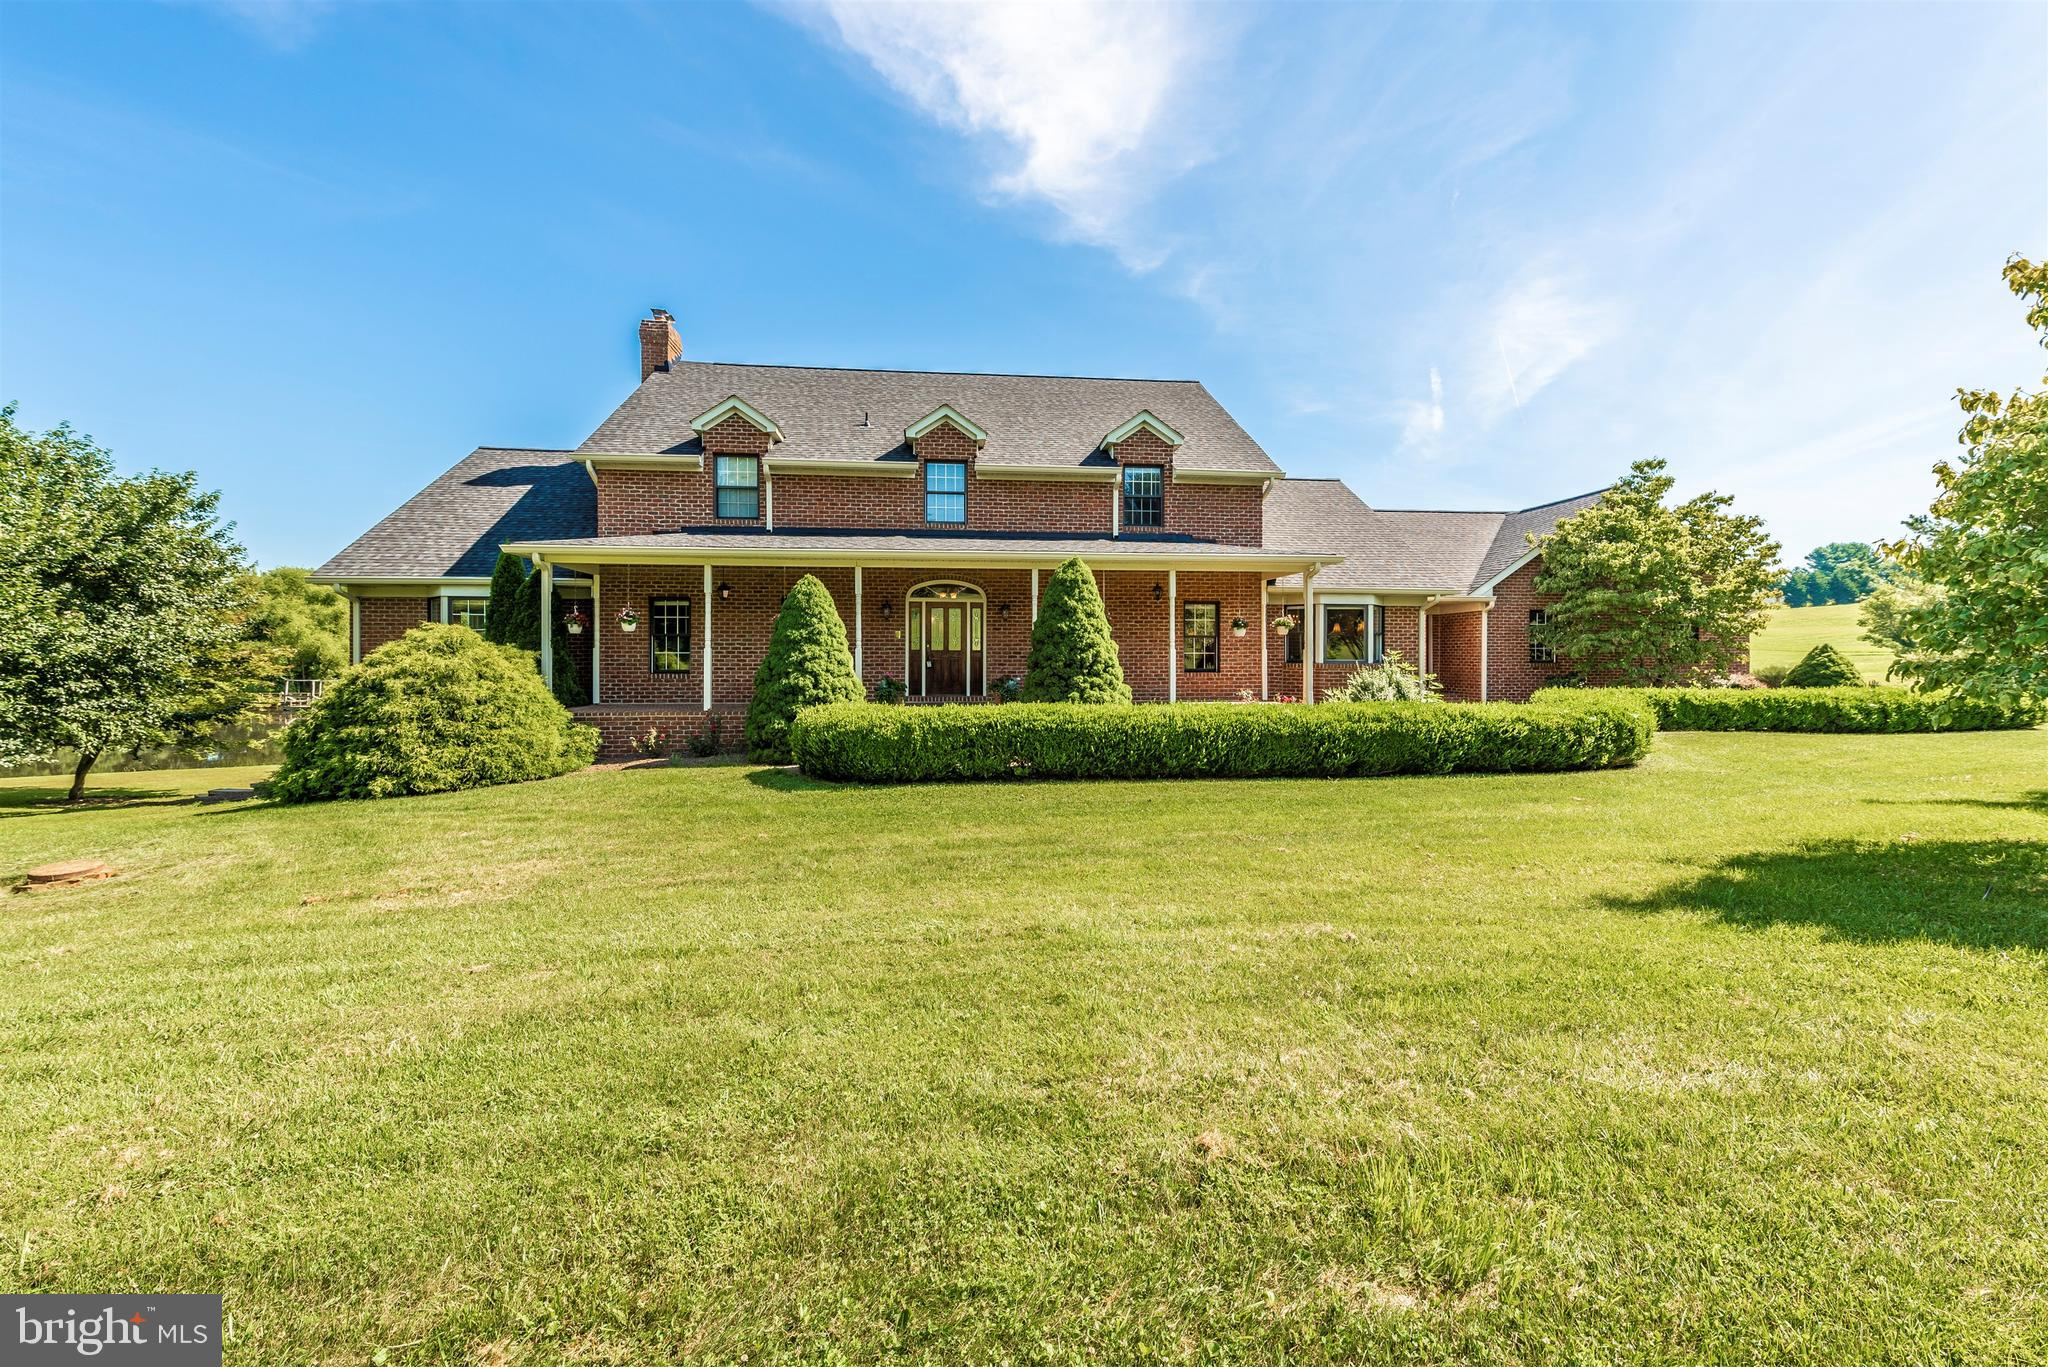 3814 AKERS DRIVE, MOUNT AIRY, MD 21771